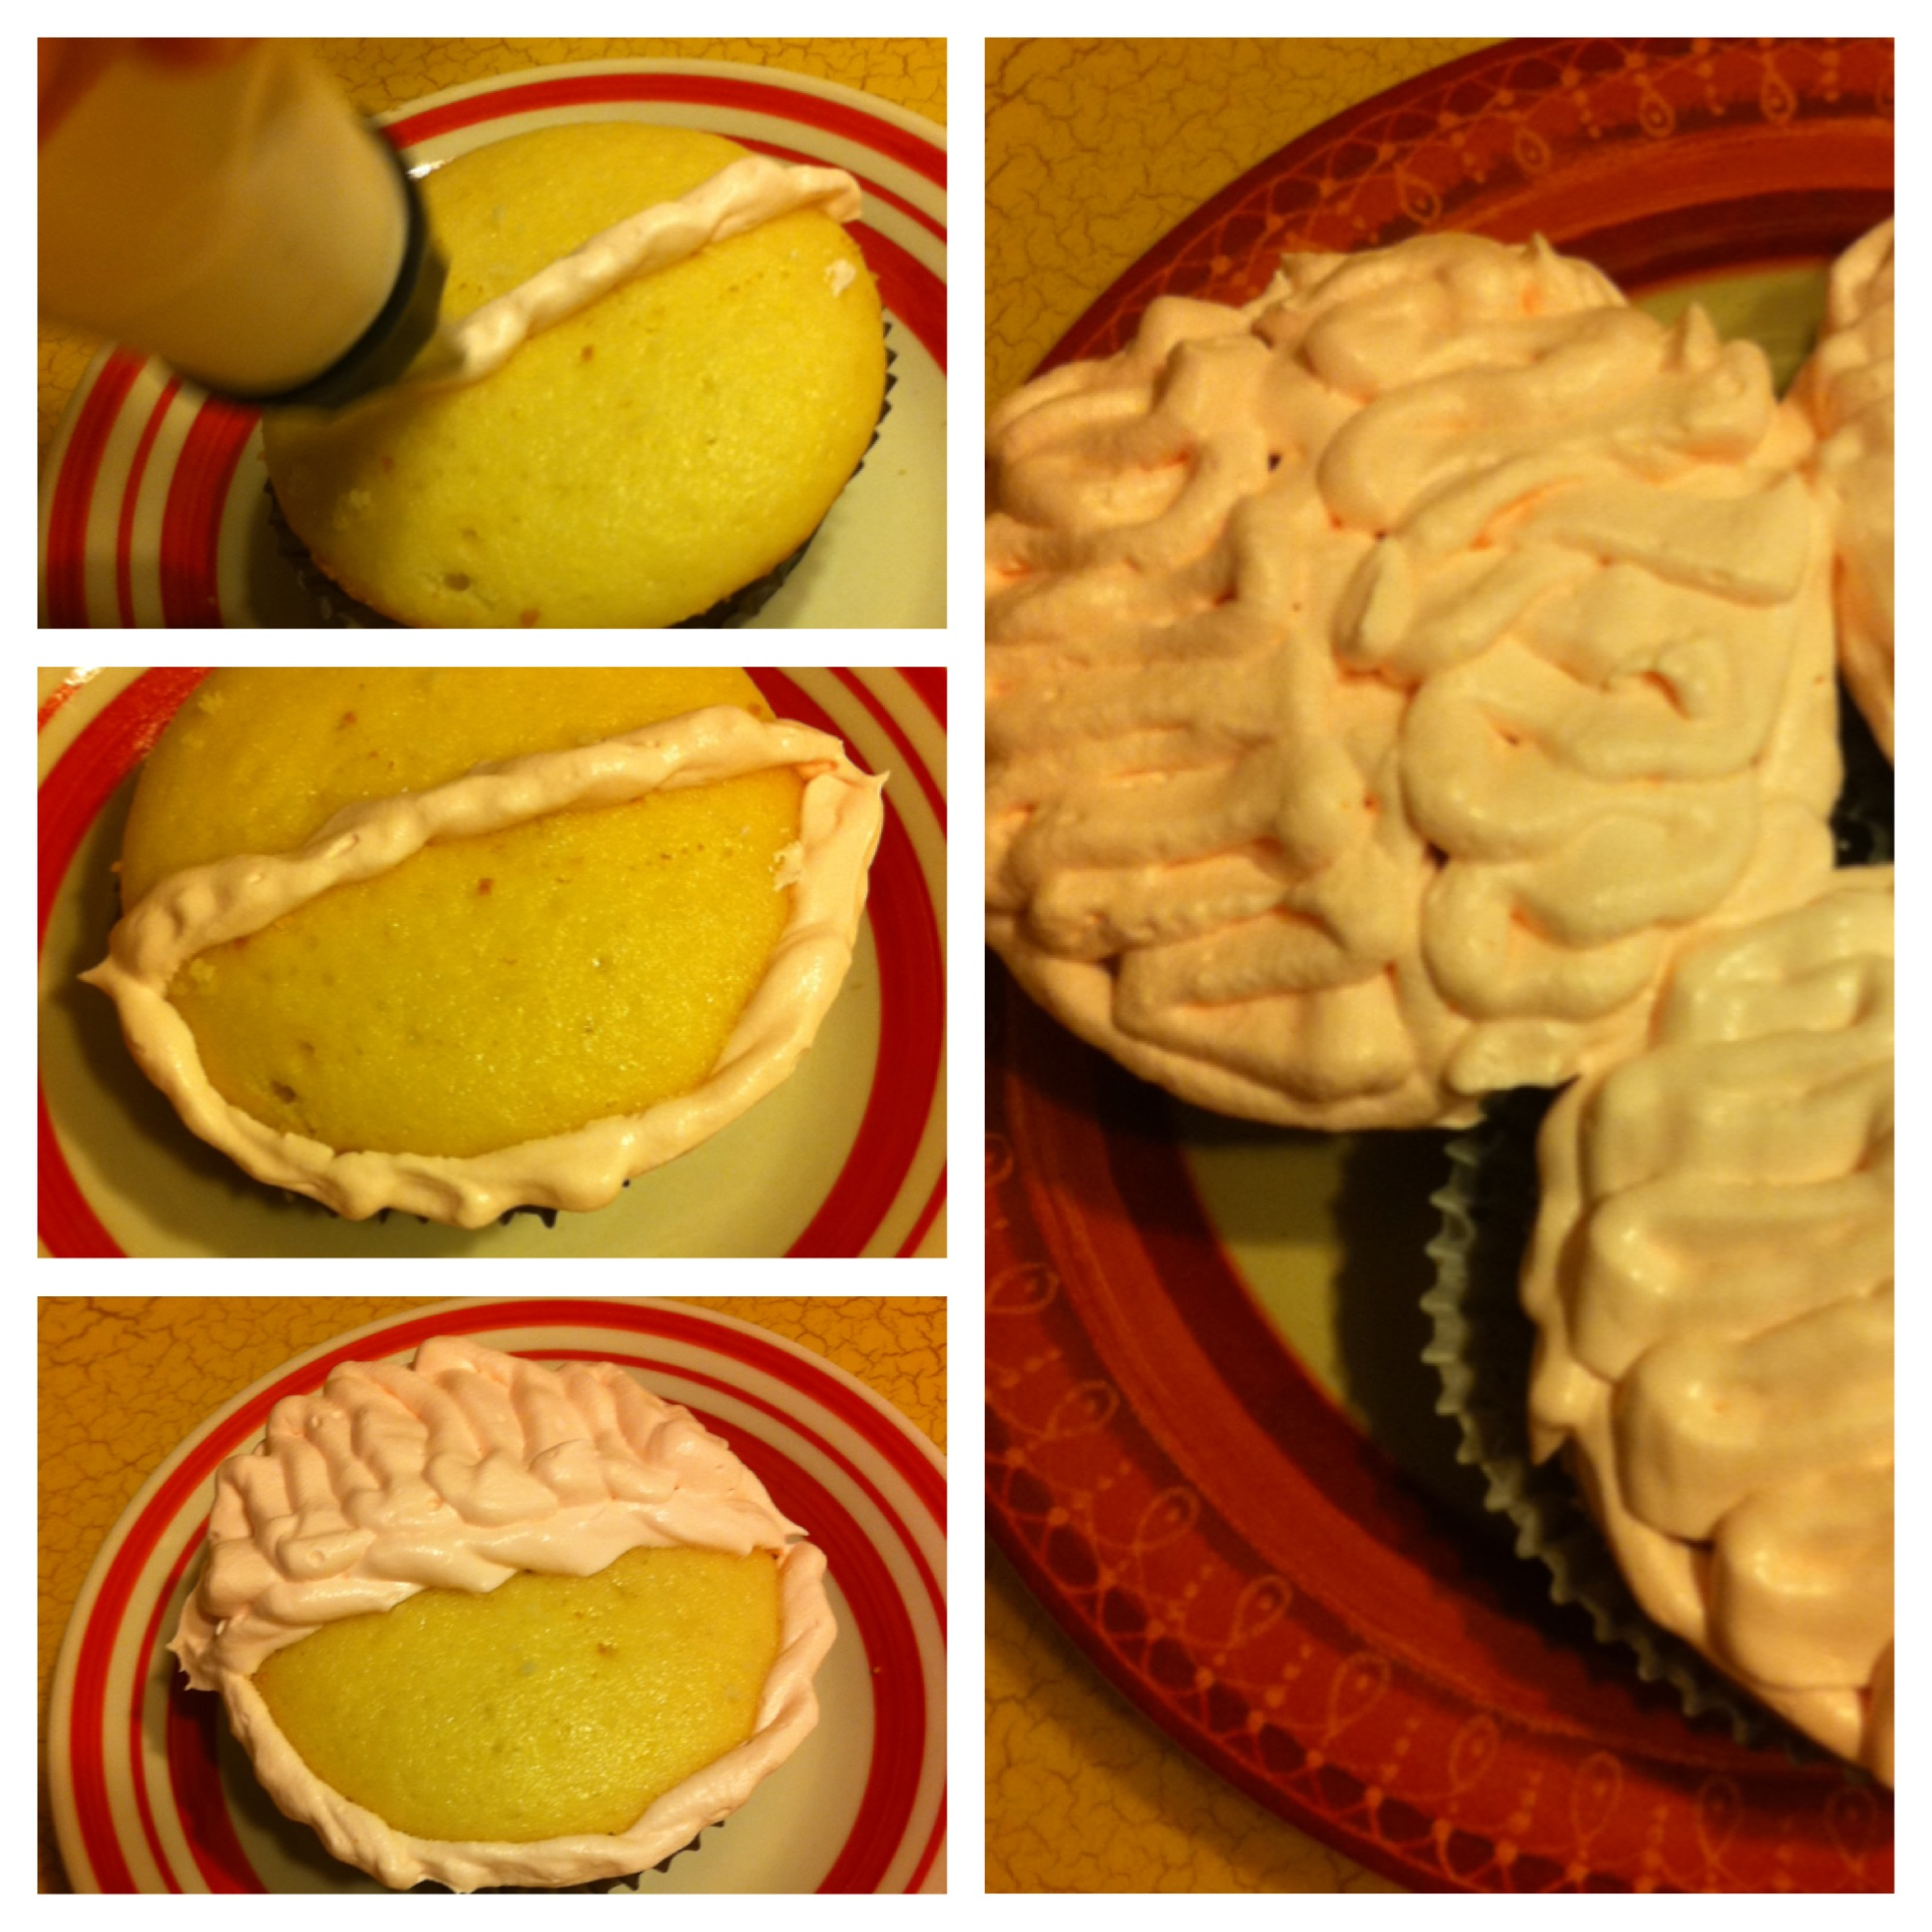 Brain Cupcakes for Halloween